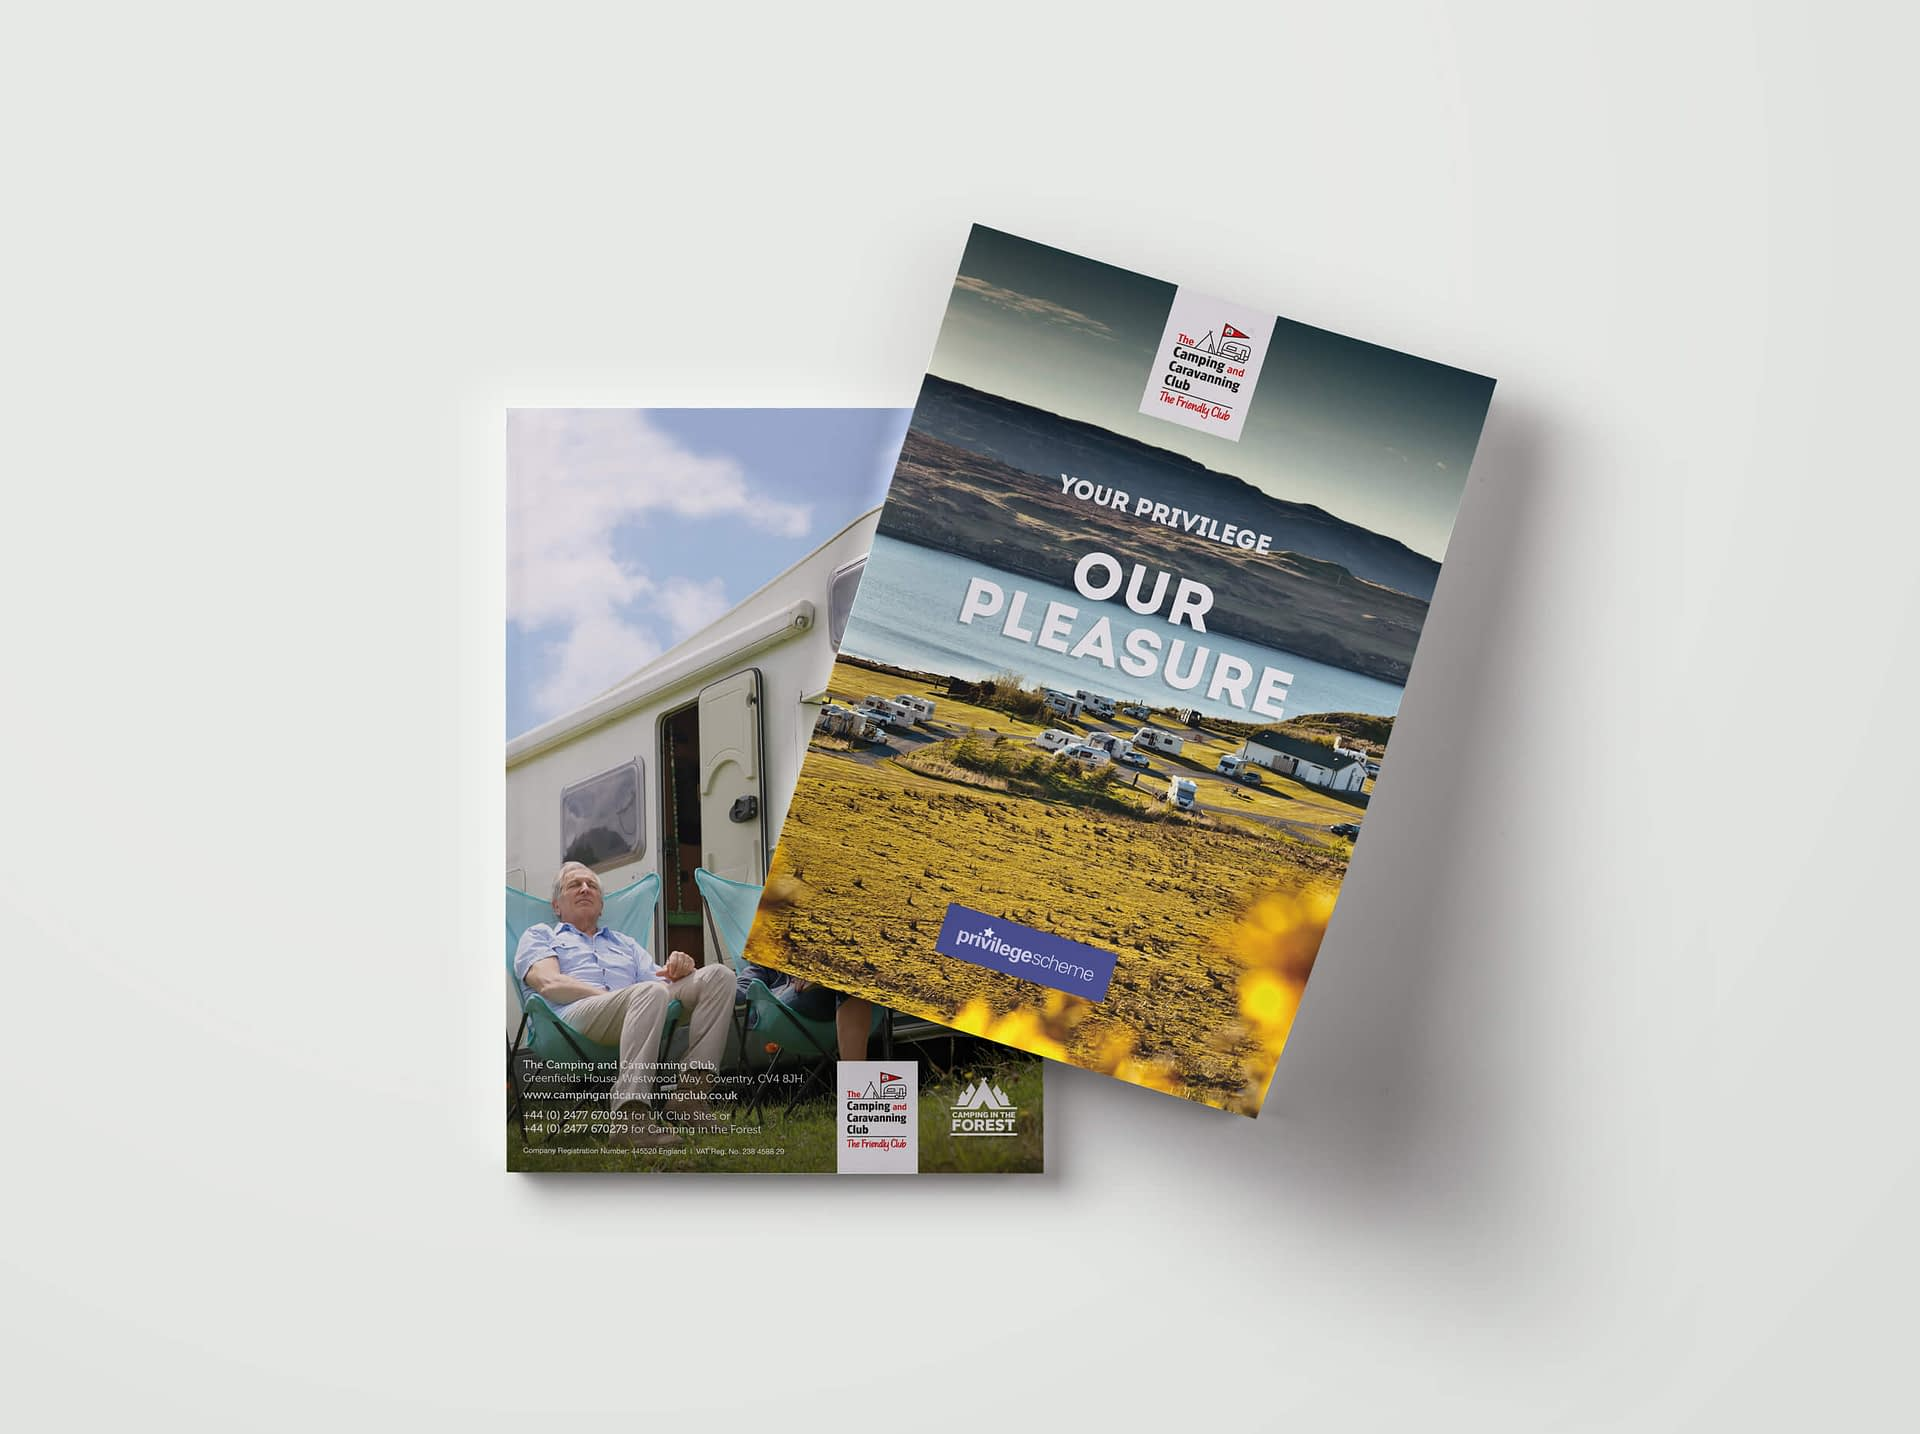 Photo of The Camping and Caravanning Club Privilege Scheme brochure design